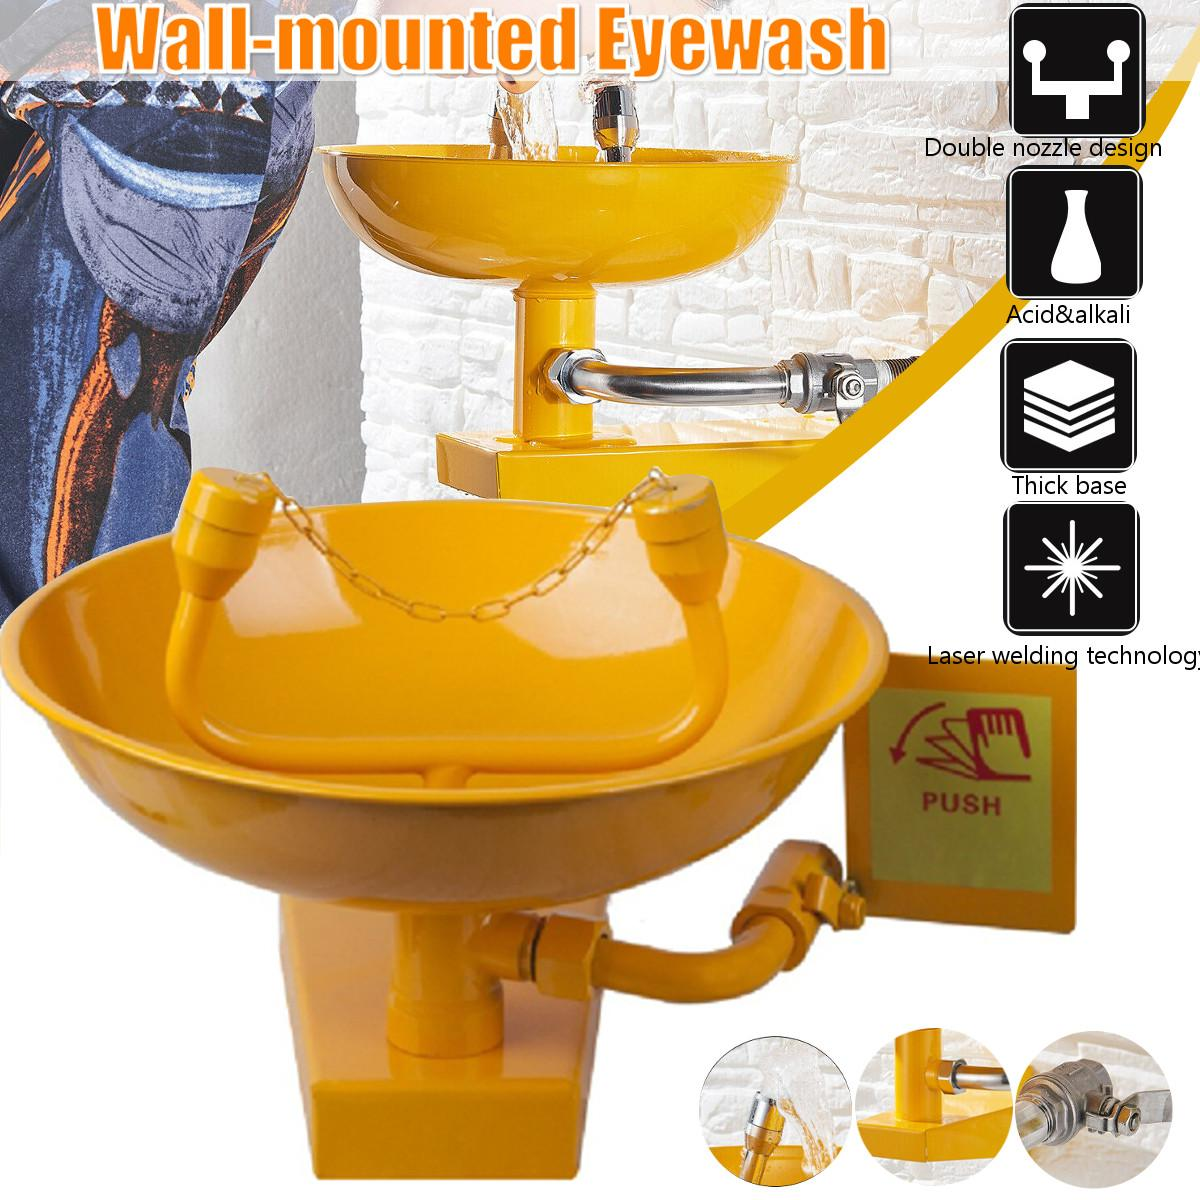 Stainless Steel Safety Equipment Emergency Eye Wash Station Wall Mounted Double-port Eye Wash Bowl Washer Fist Aid Tool